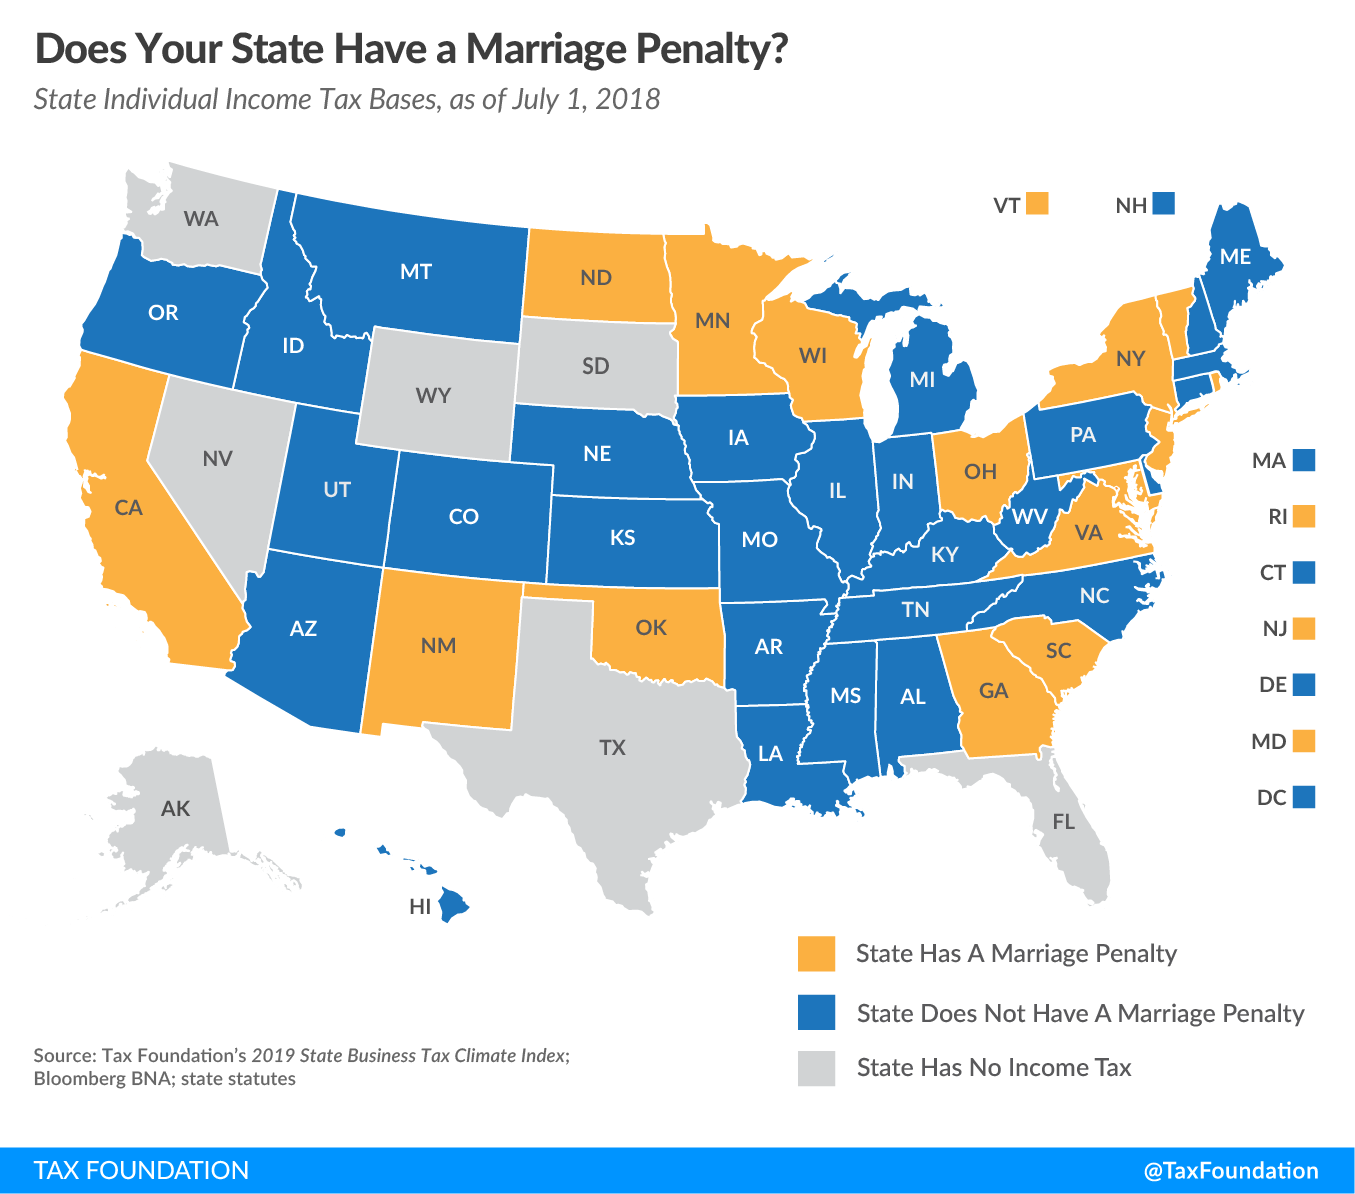 Does Your State Have a Marriage Penalty?